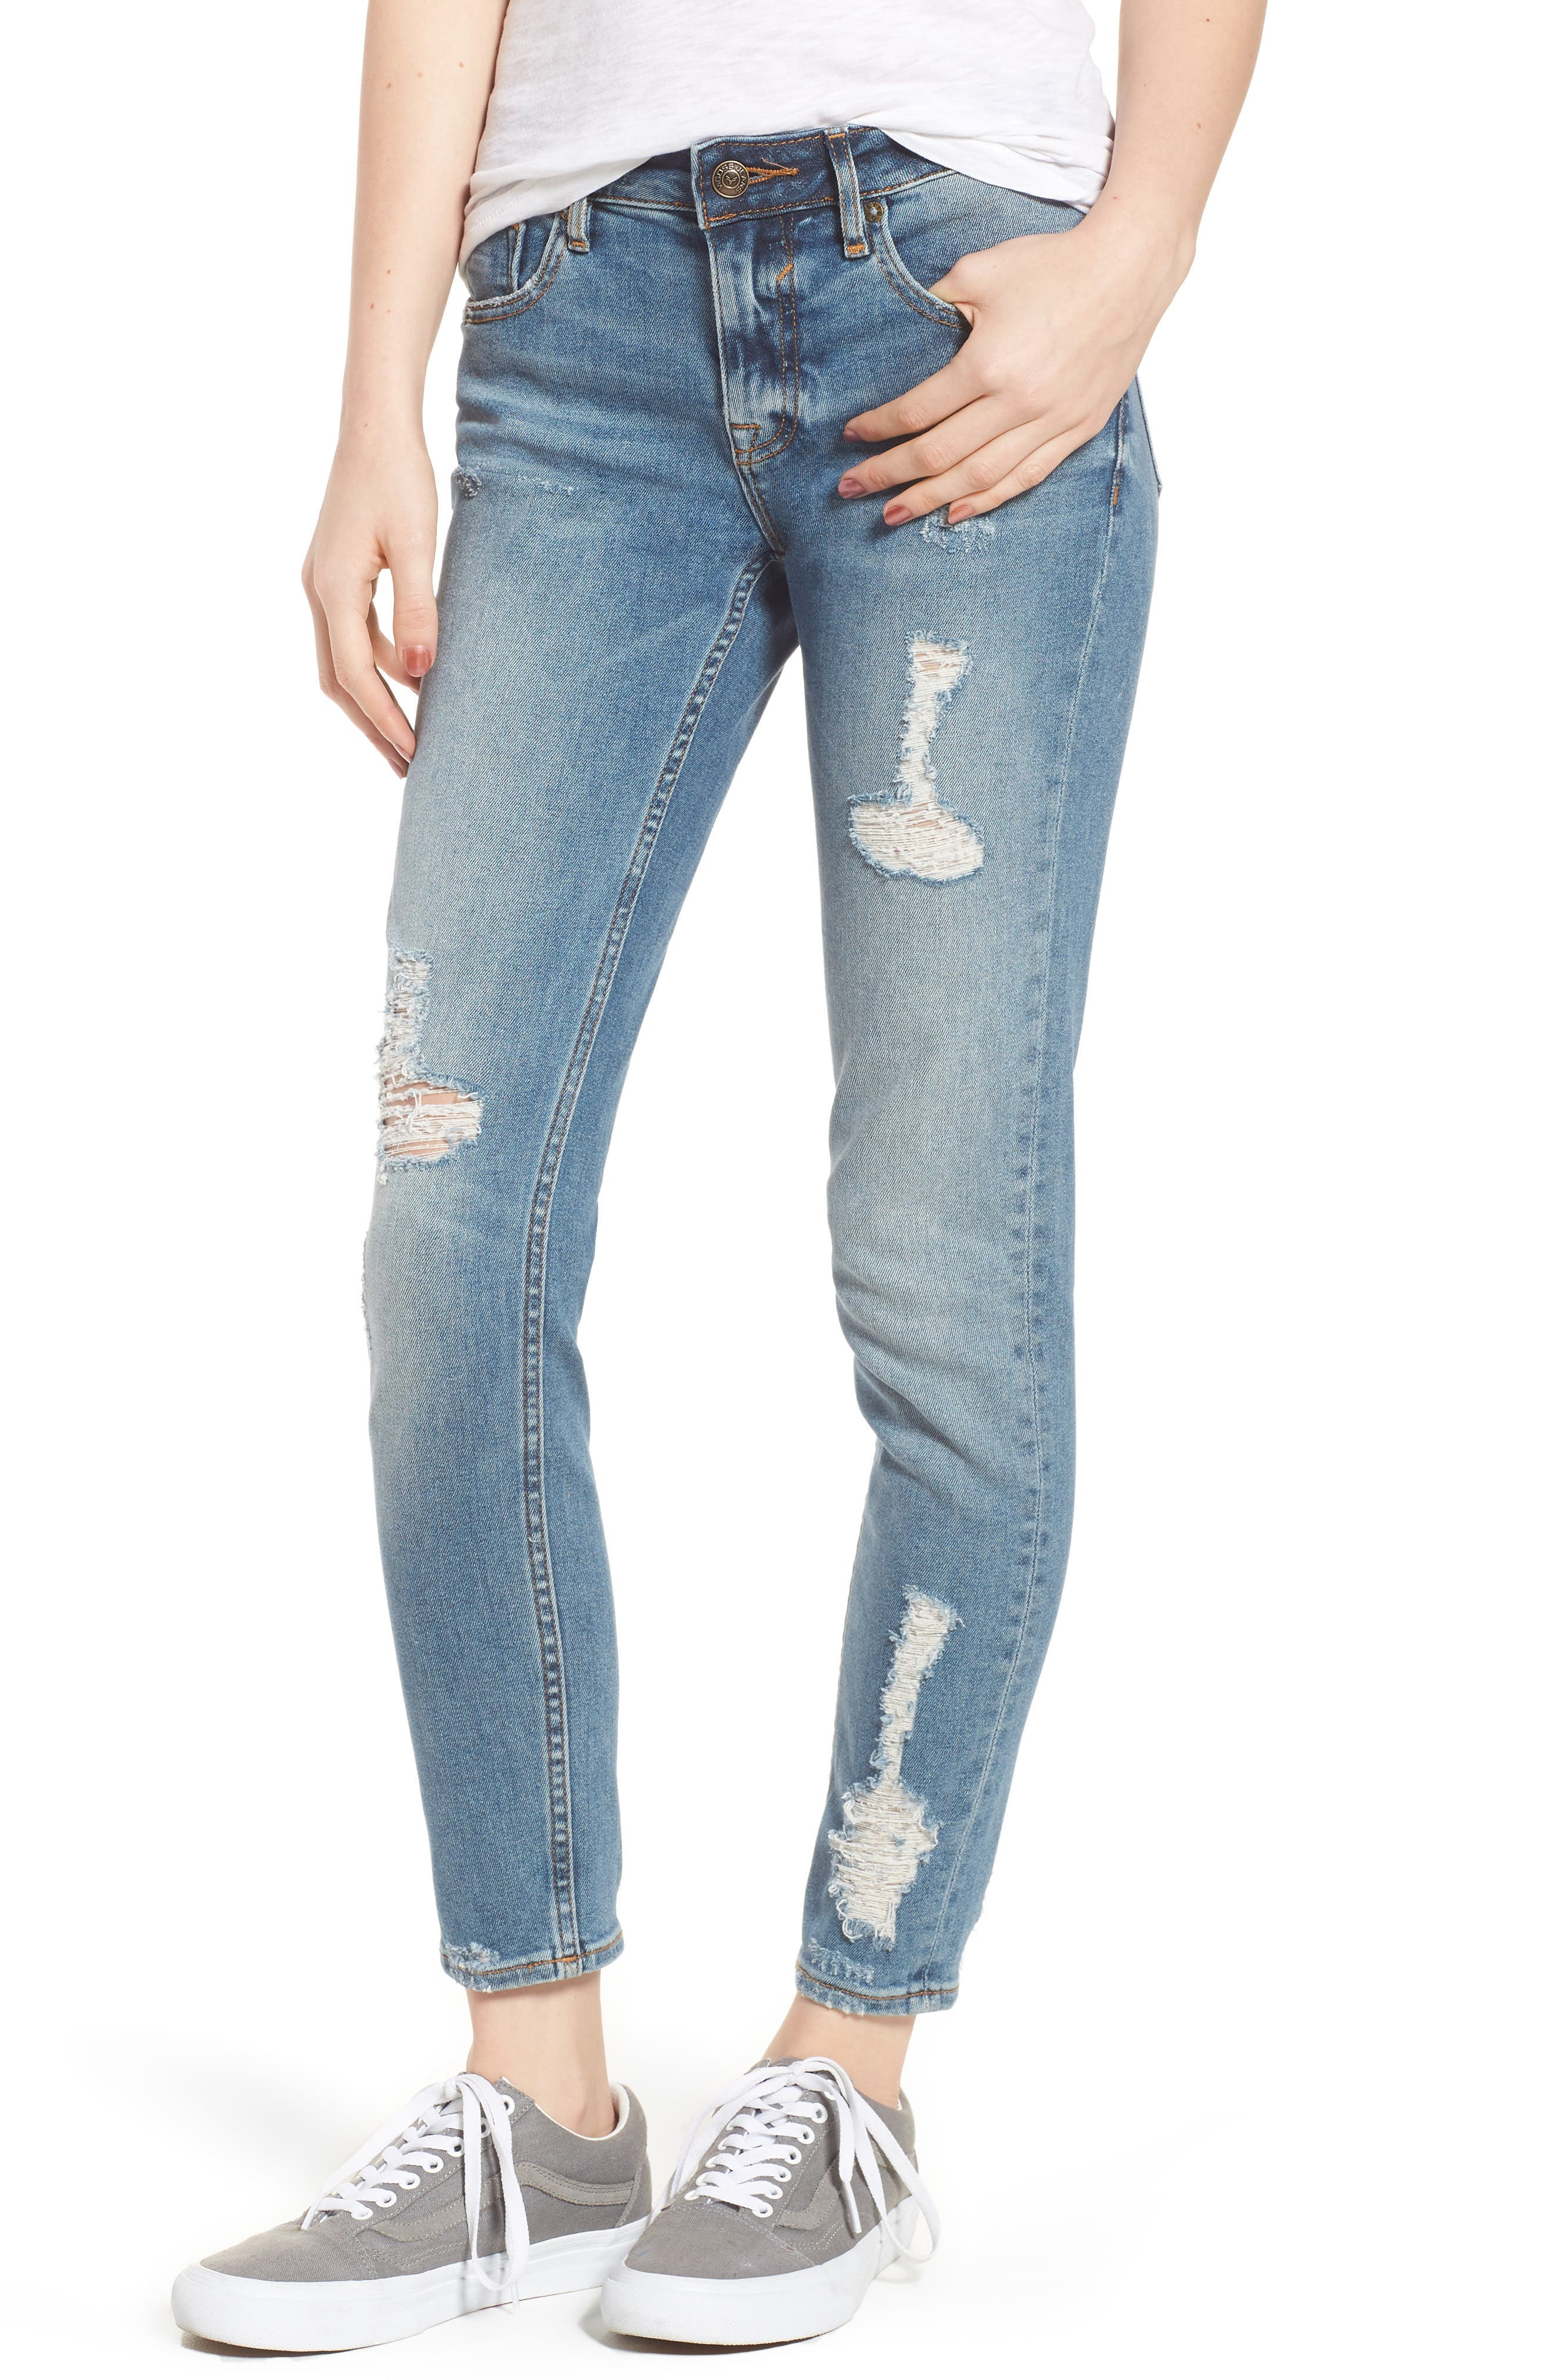 Jagger Decon Distressed Skinny Jeans,                         Main,                         color, 426